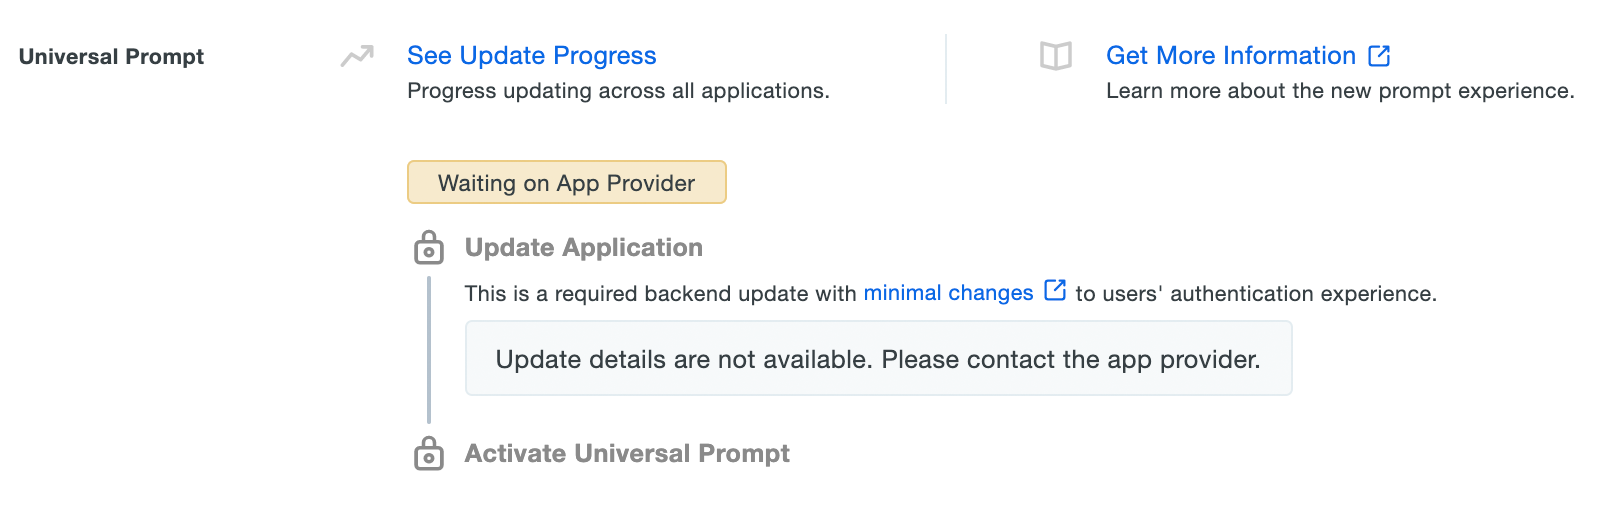 Universal Prompt Info - Update Not Yet Available